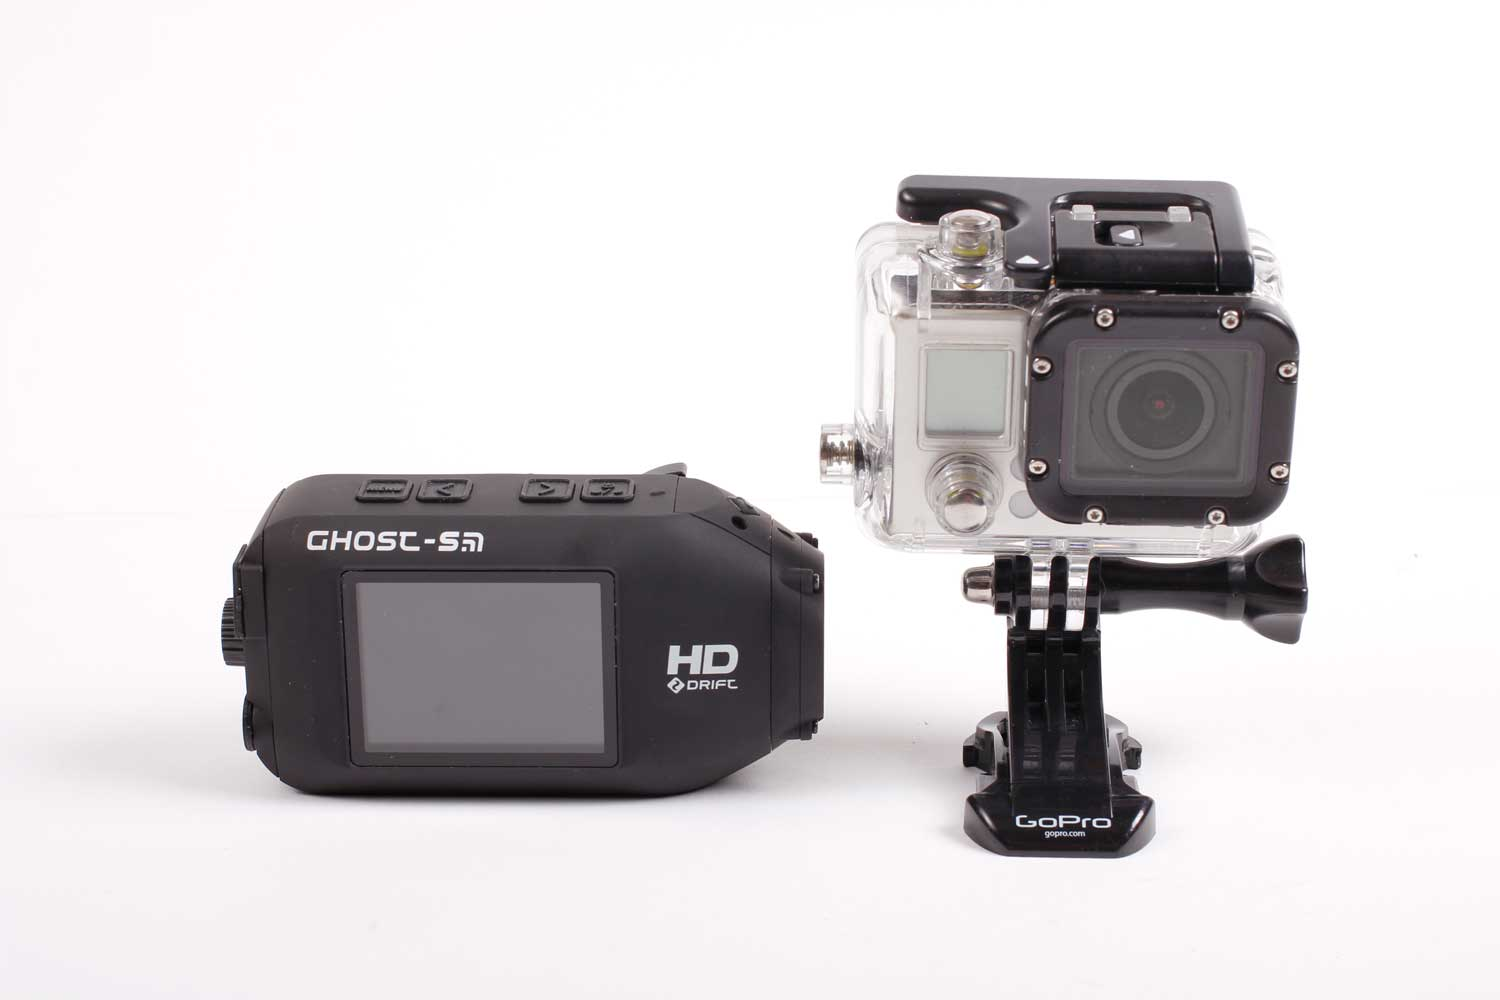 Once in its case, the GoPro is slightly heavier than the Drift